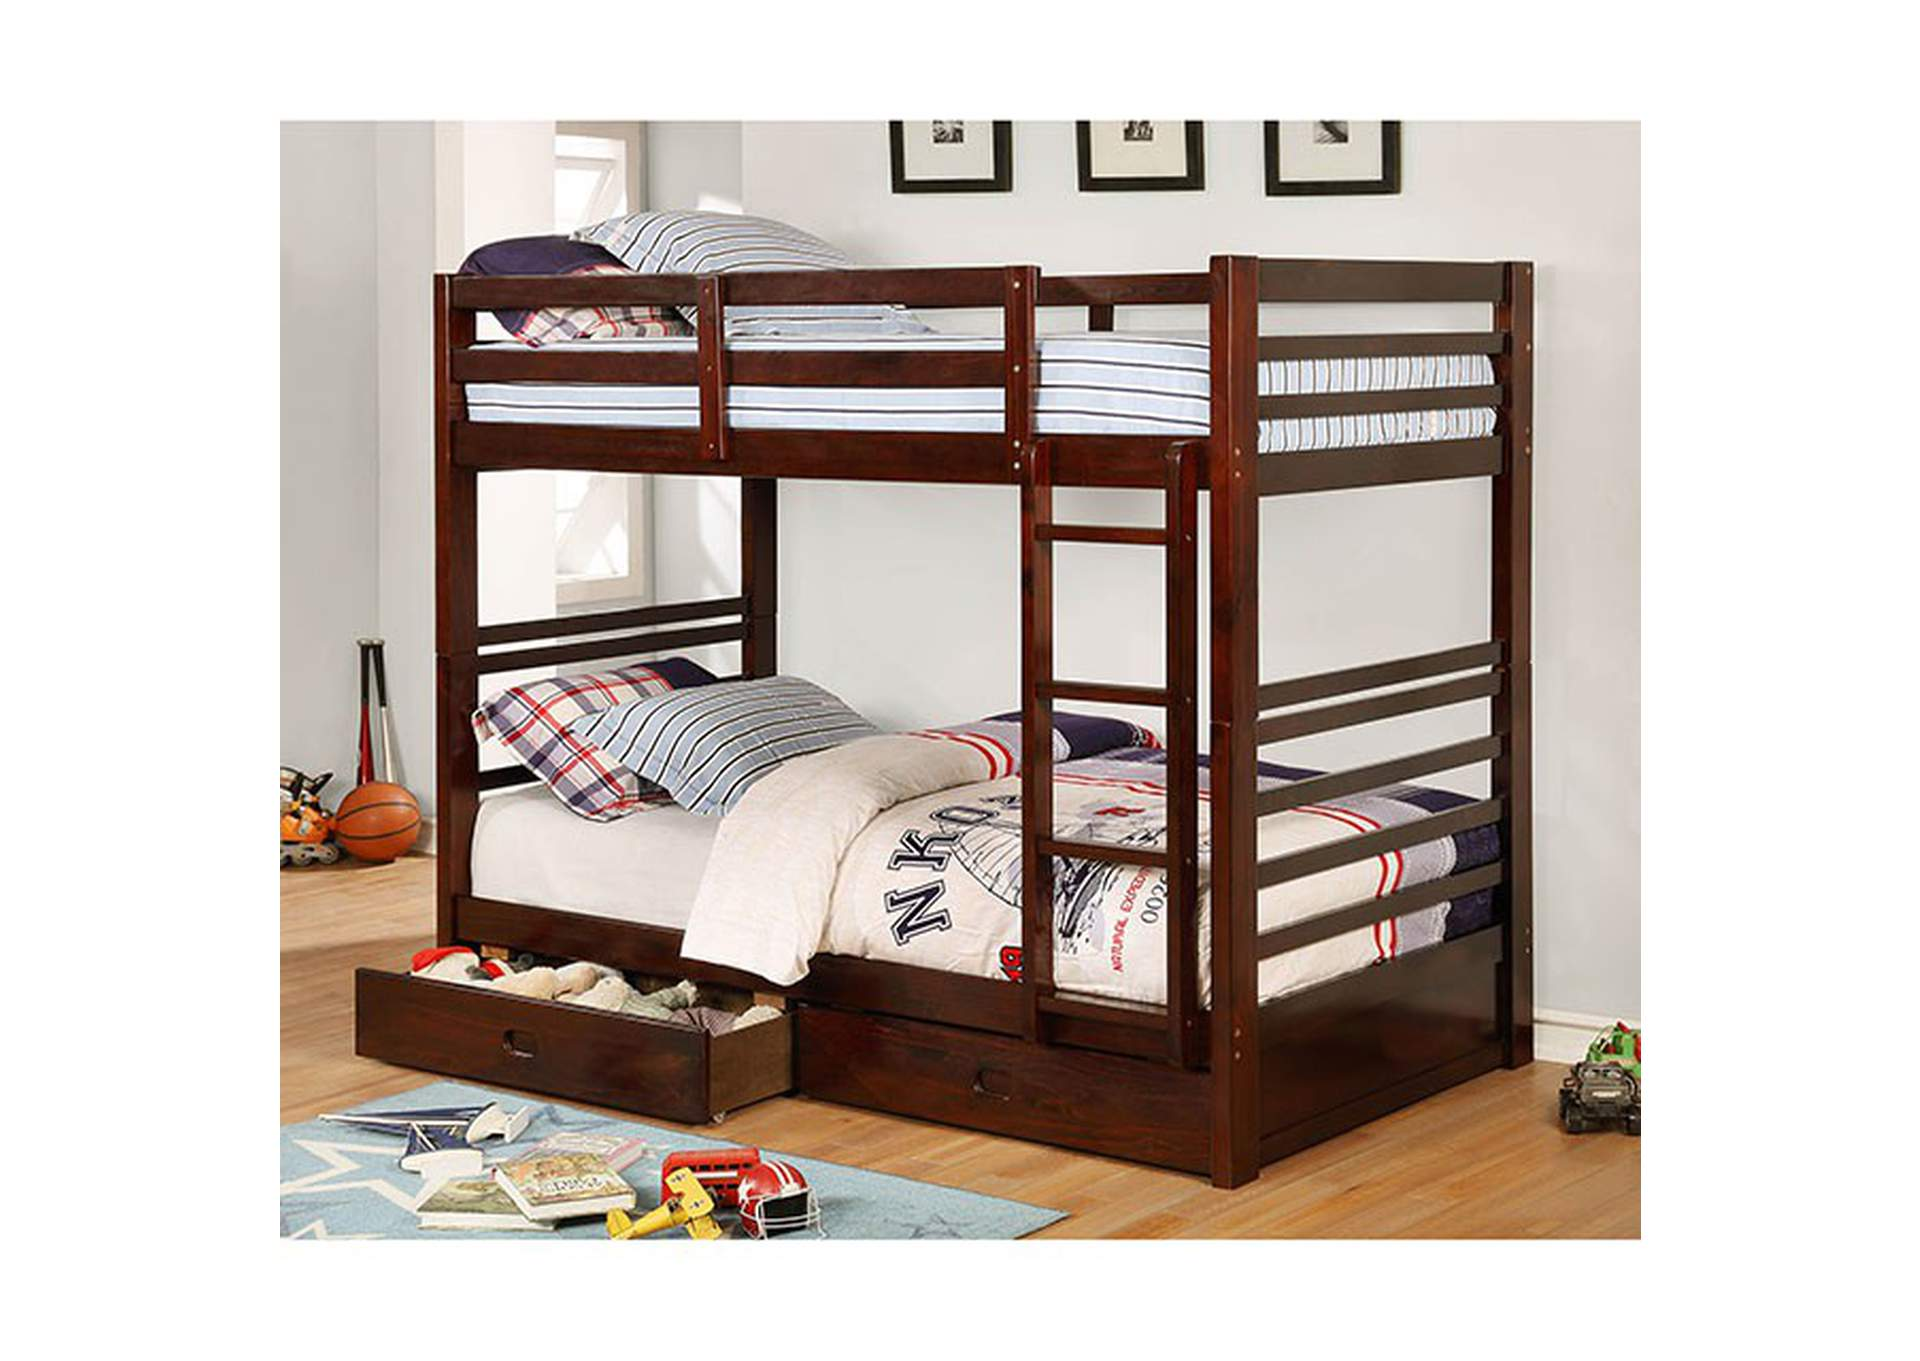 California IV Espresso Twin/Twin Bunk Bed,Furniture of America